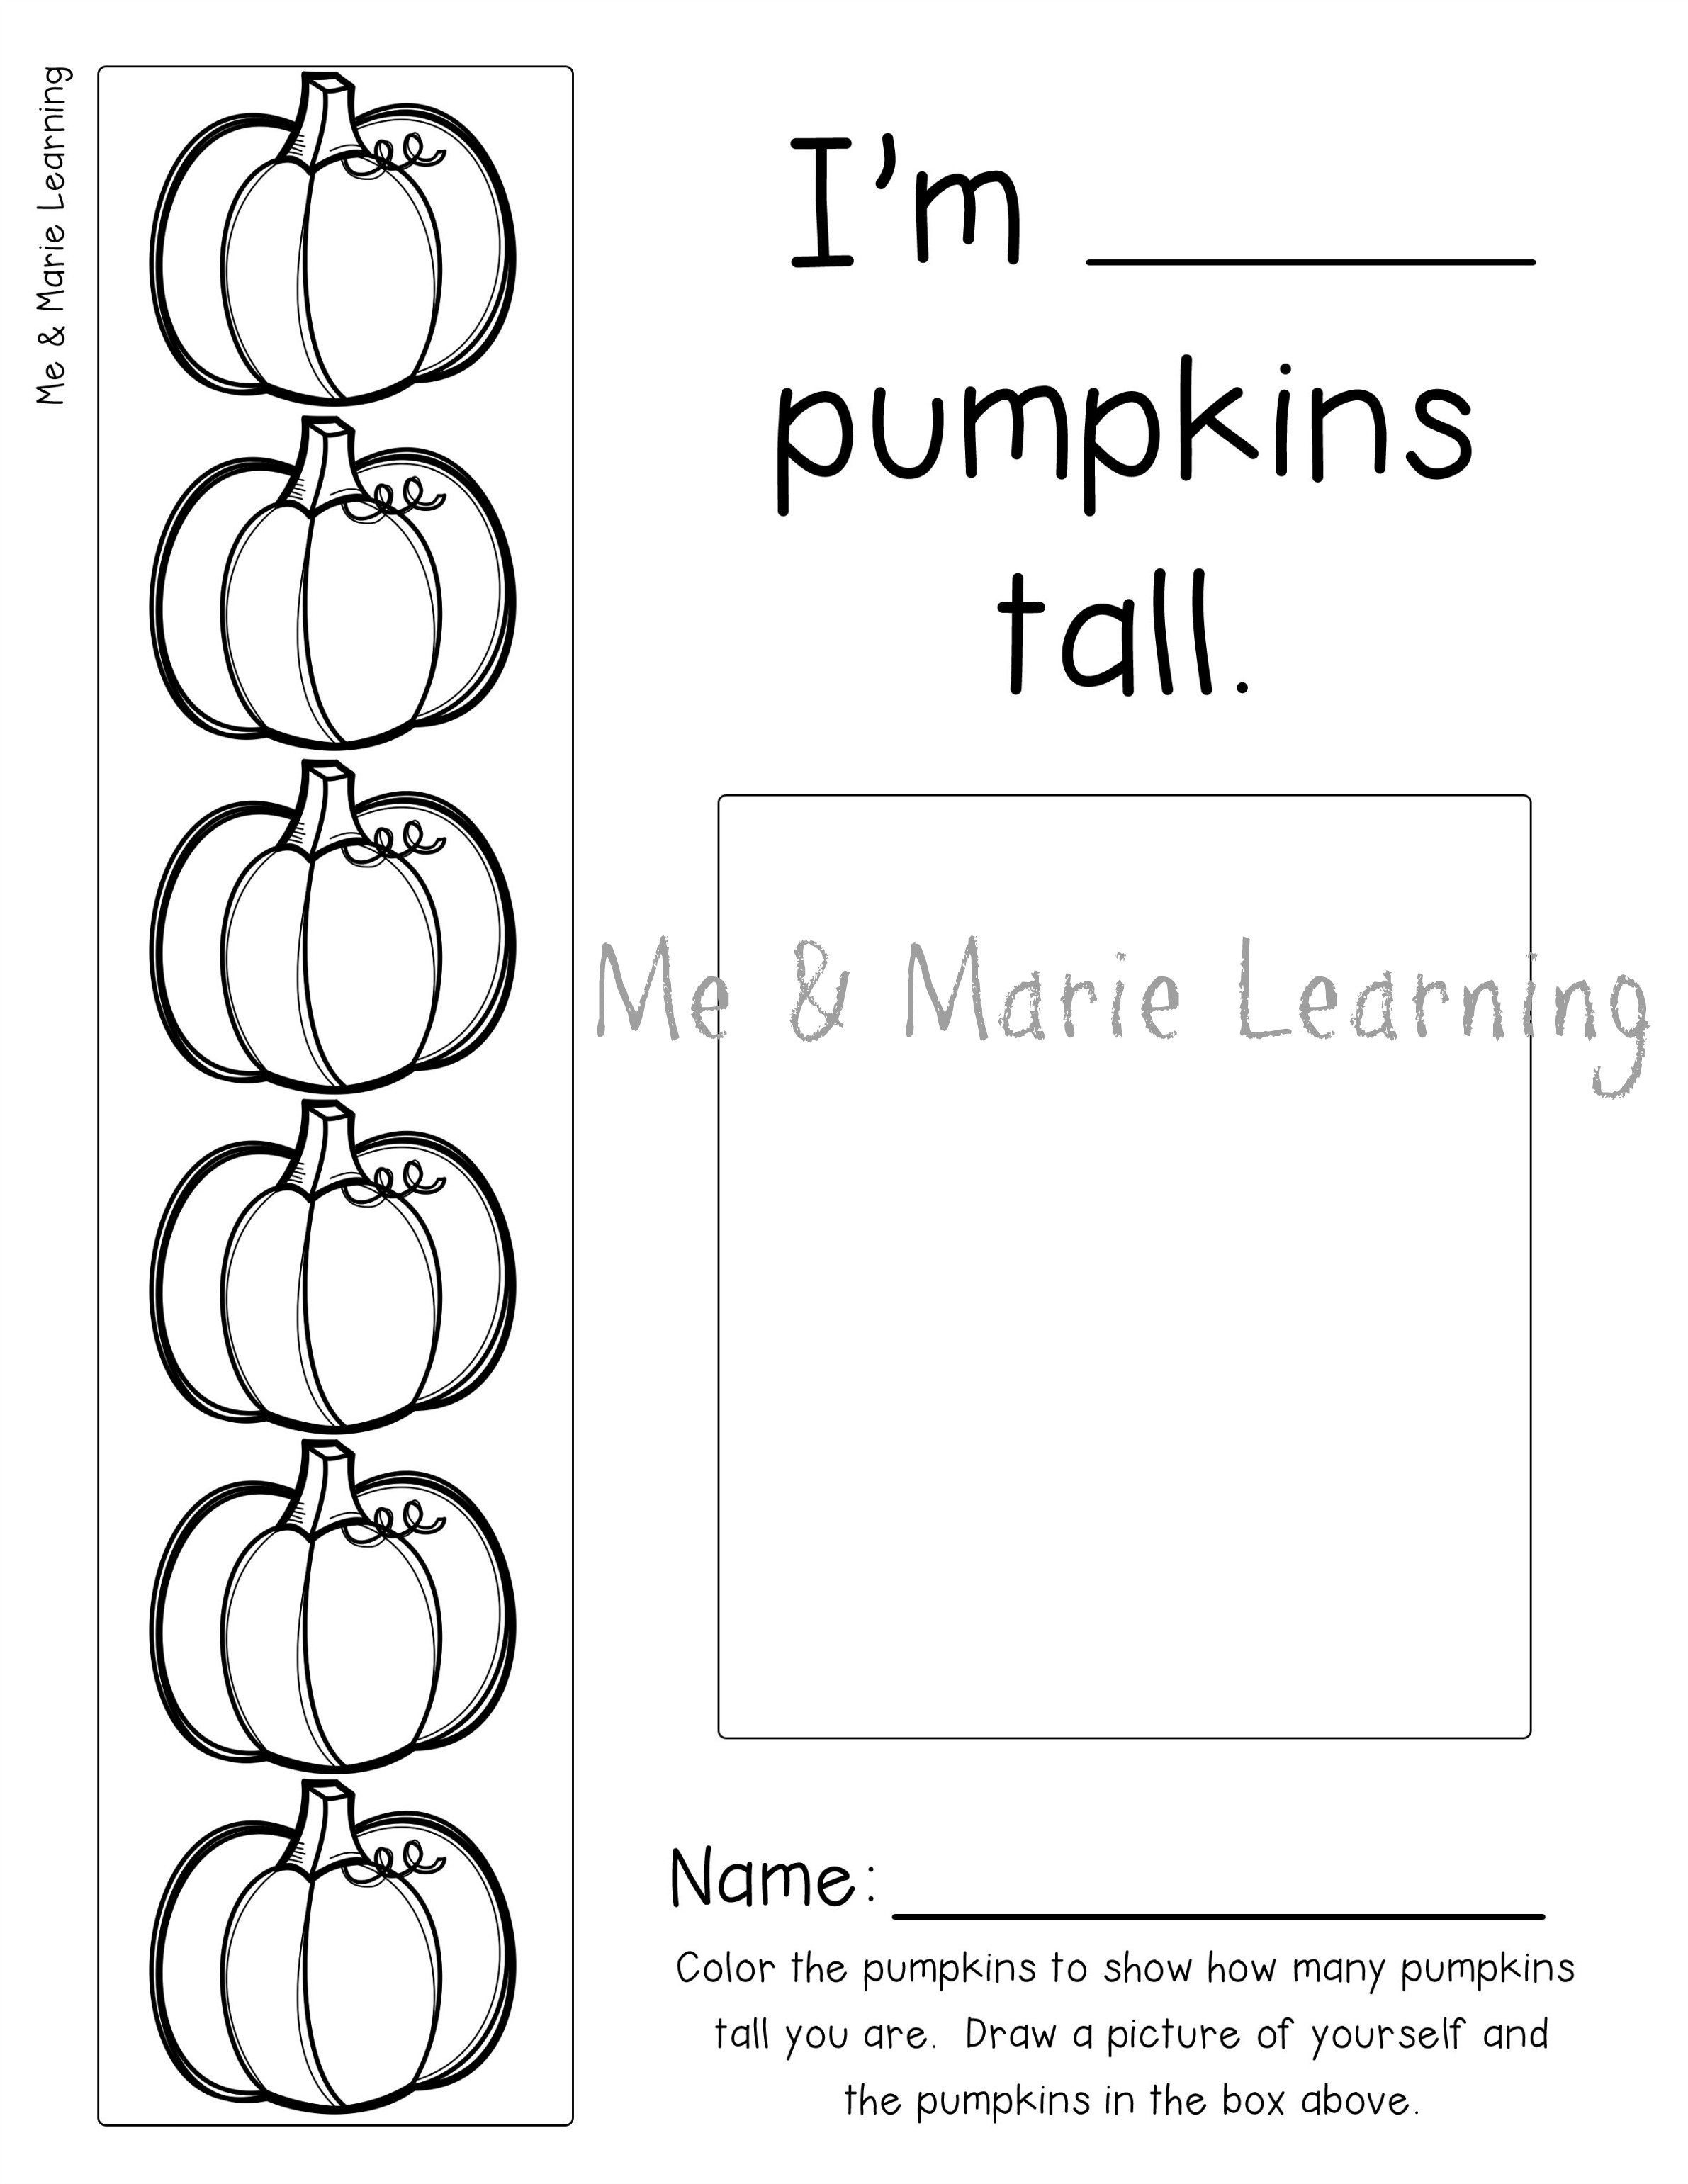 pumpkins tall printable